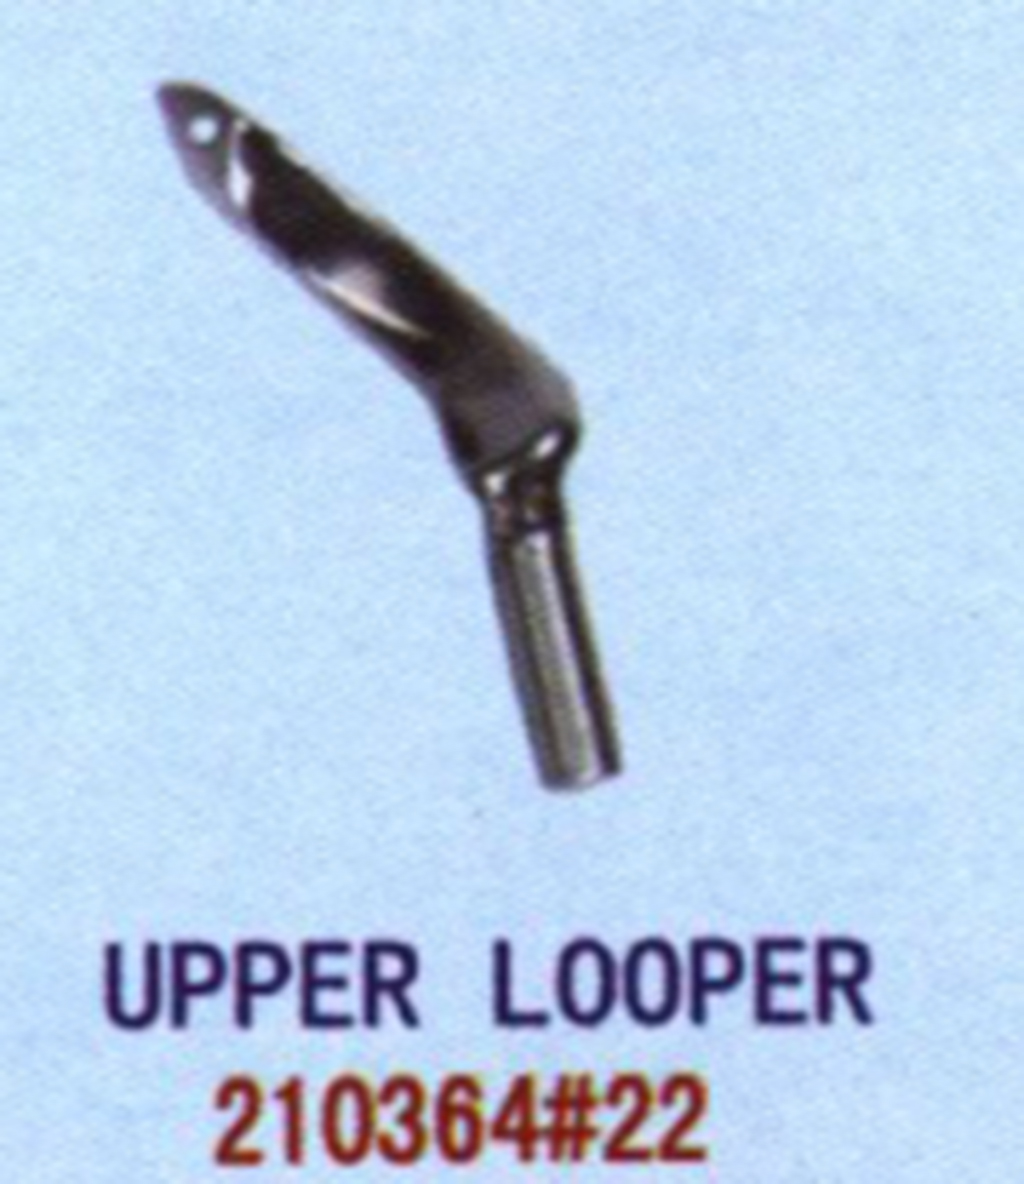 210364#22 upper looper Suitable for E56 Curved needle bending of needle industrial sewing machine spares parts